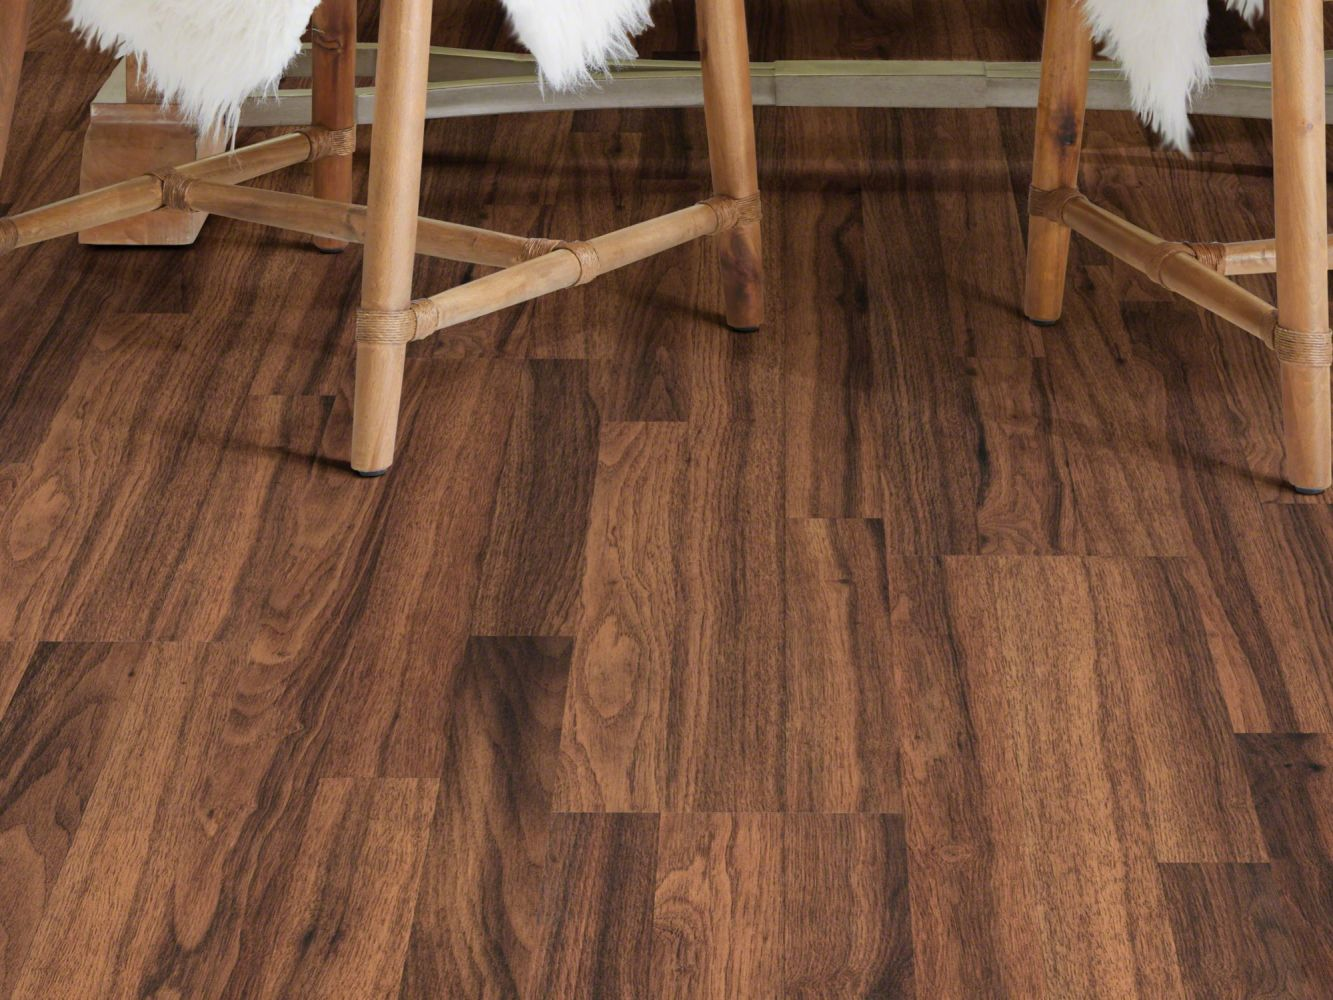 Shaw Floors Versalock Laminate Classic Designs Kings Cnyn Chry 08039_SL110